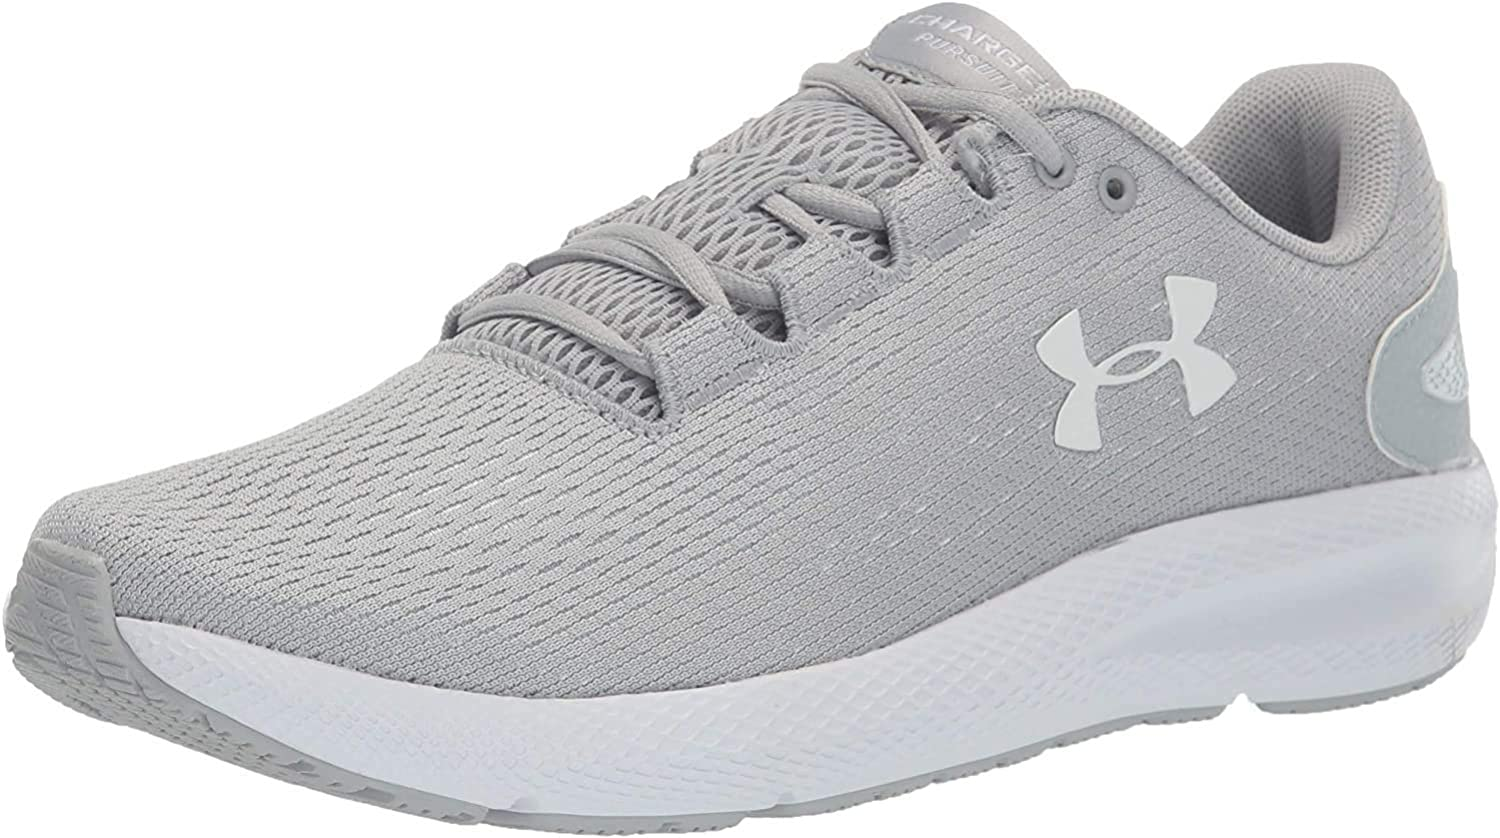 Under Directly managed store Armour Men's Charged Pursuit 2 Gray Shoe Over item handling ☆ 102 Mod Running